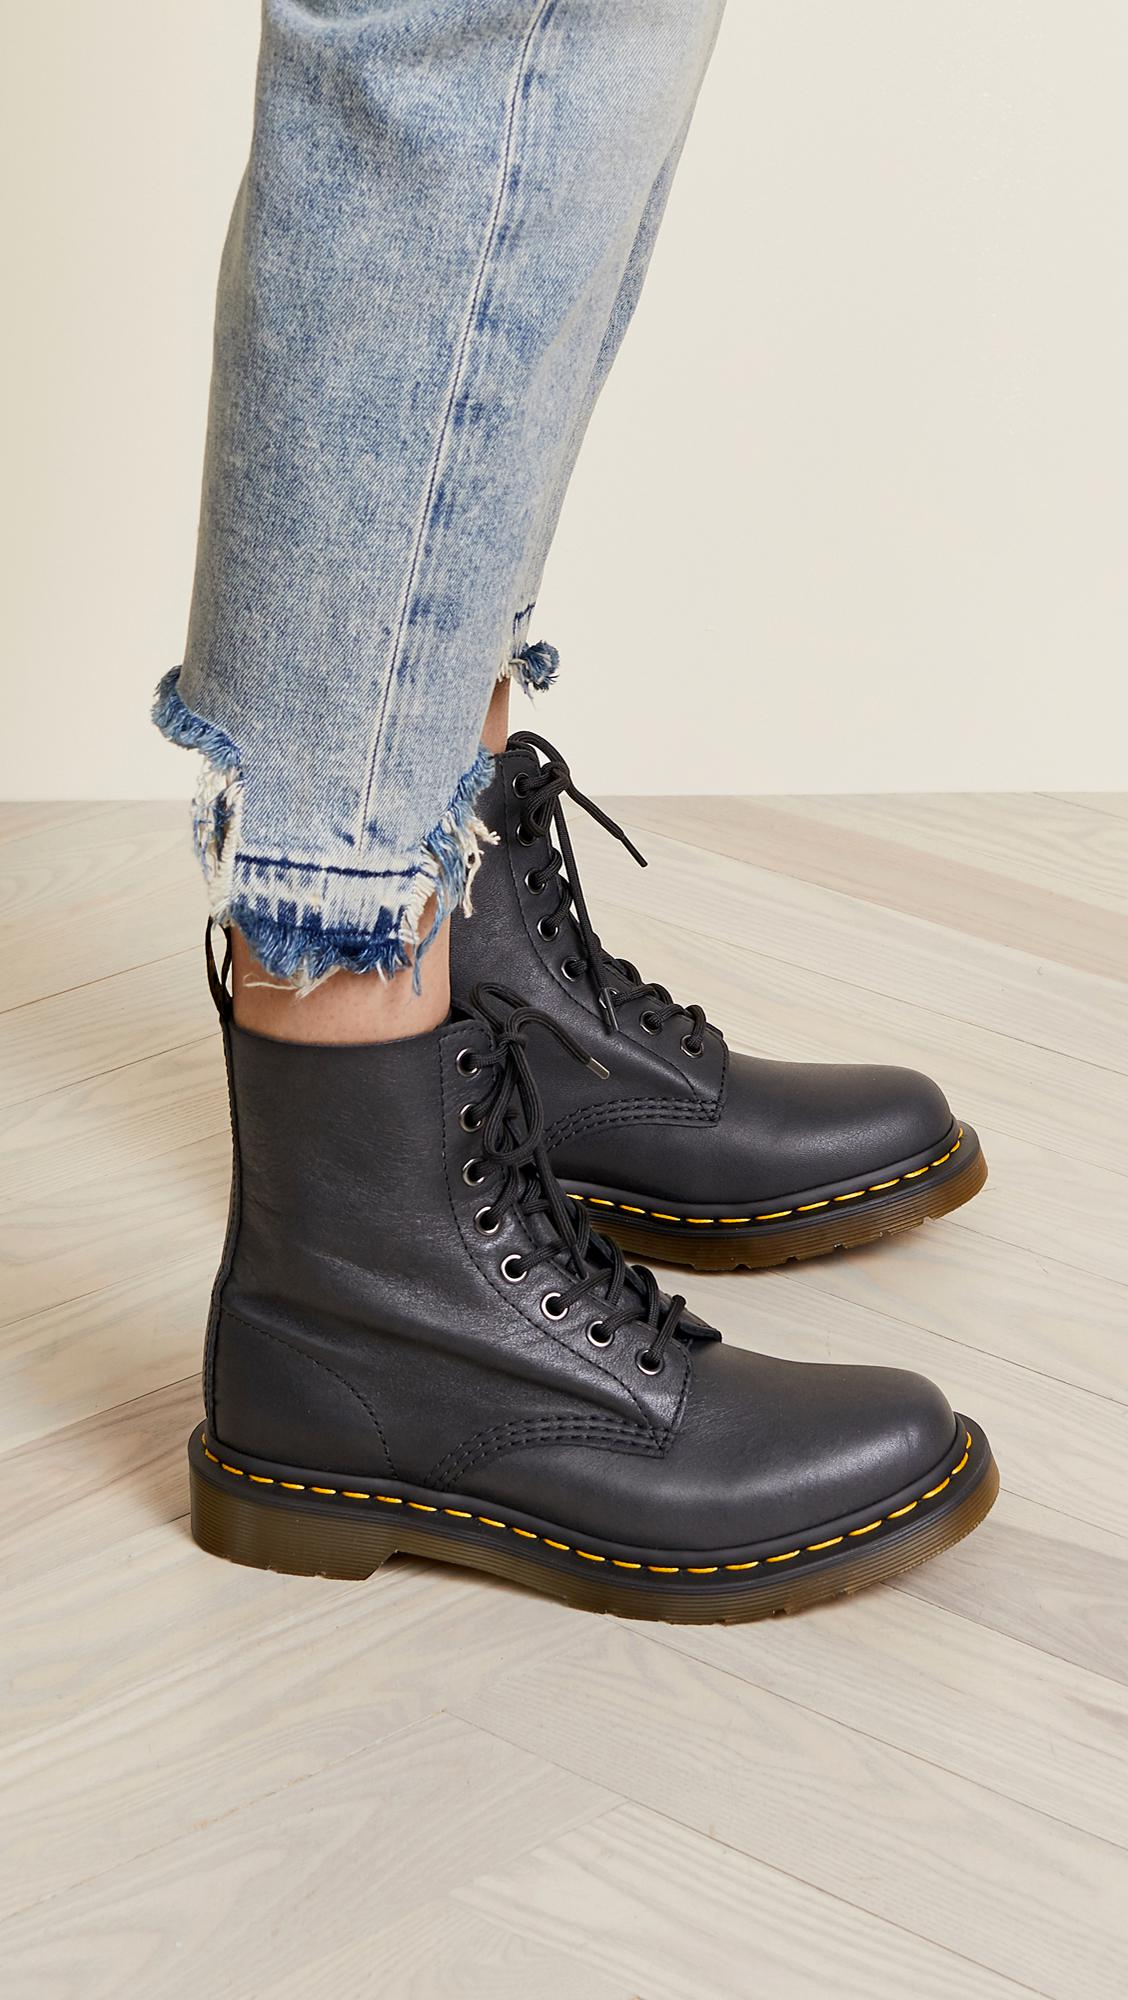 186c75f39a9a ... Black 1460 Pascal 8 Eye Boots - Lyst. View fullscreen